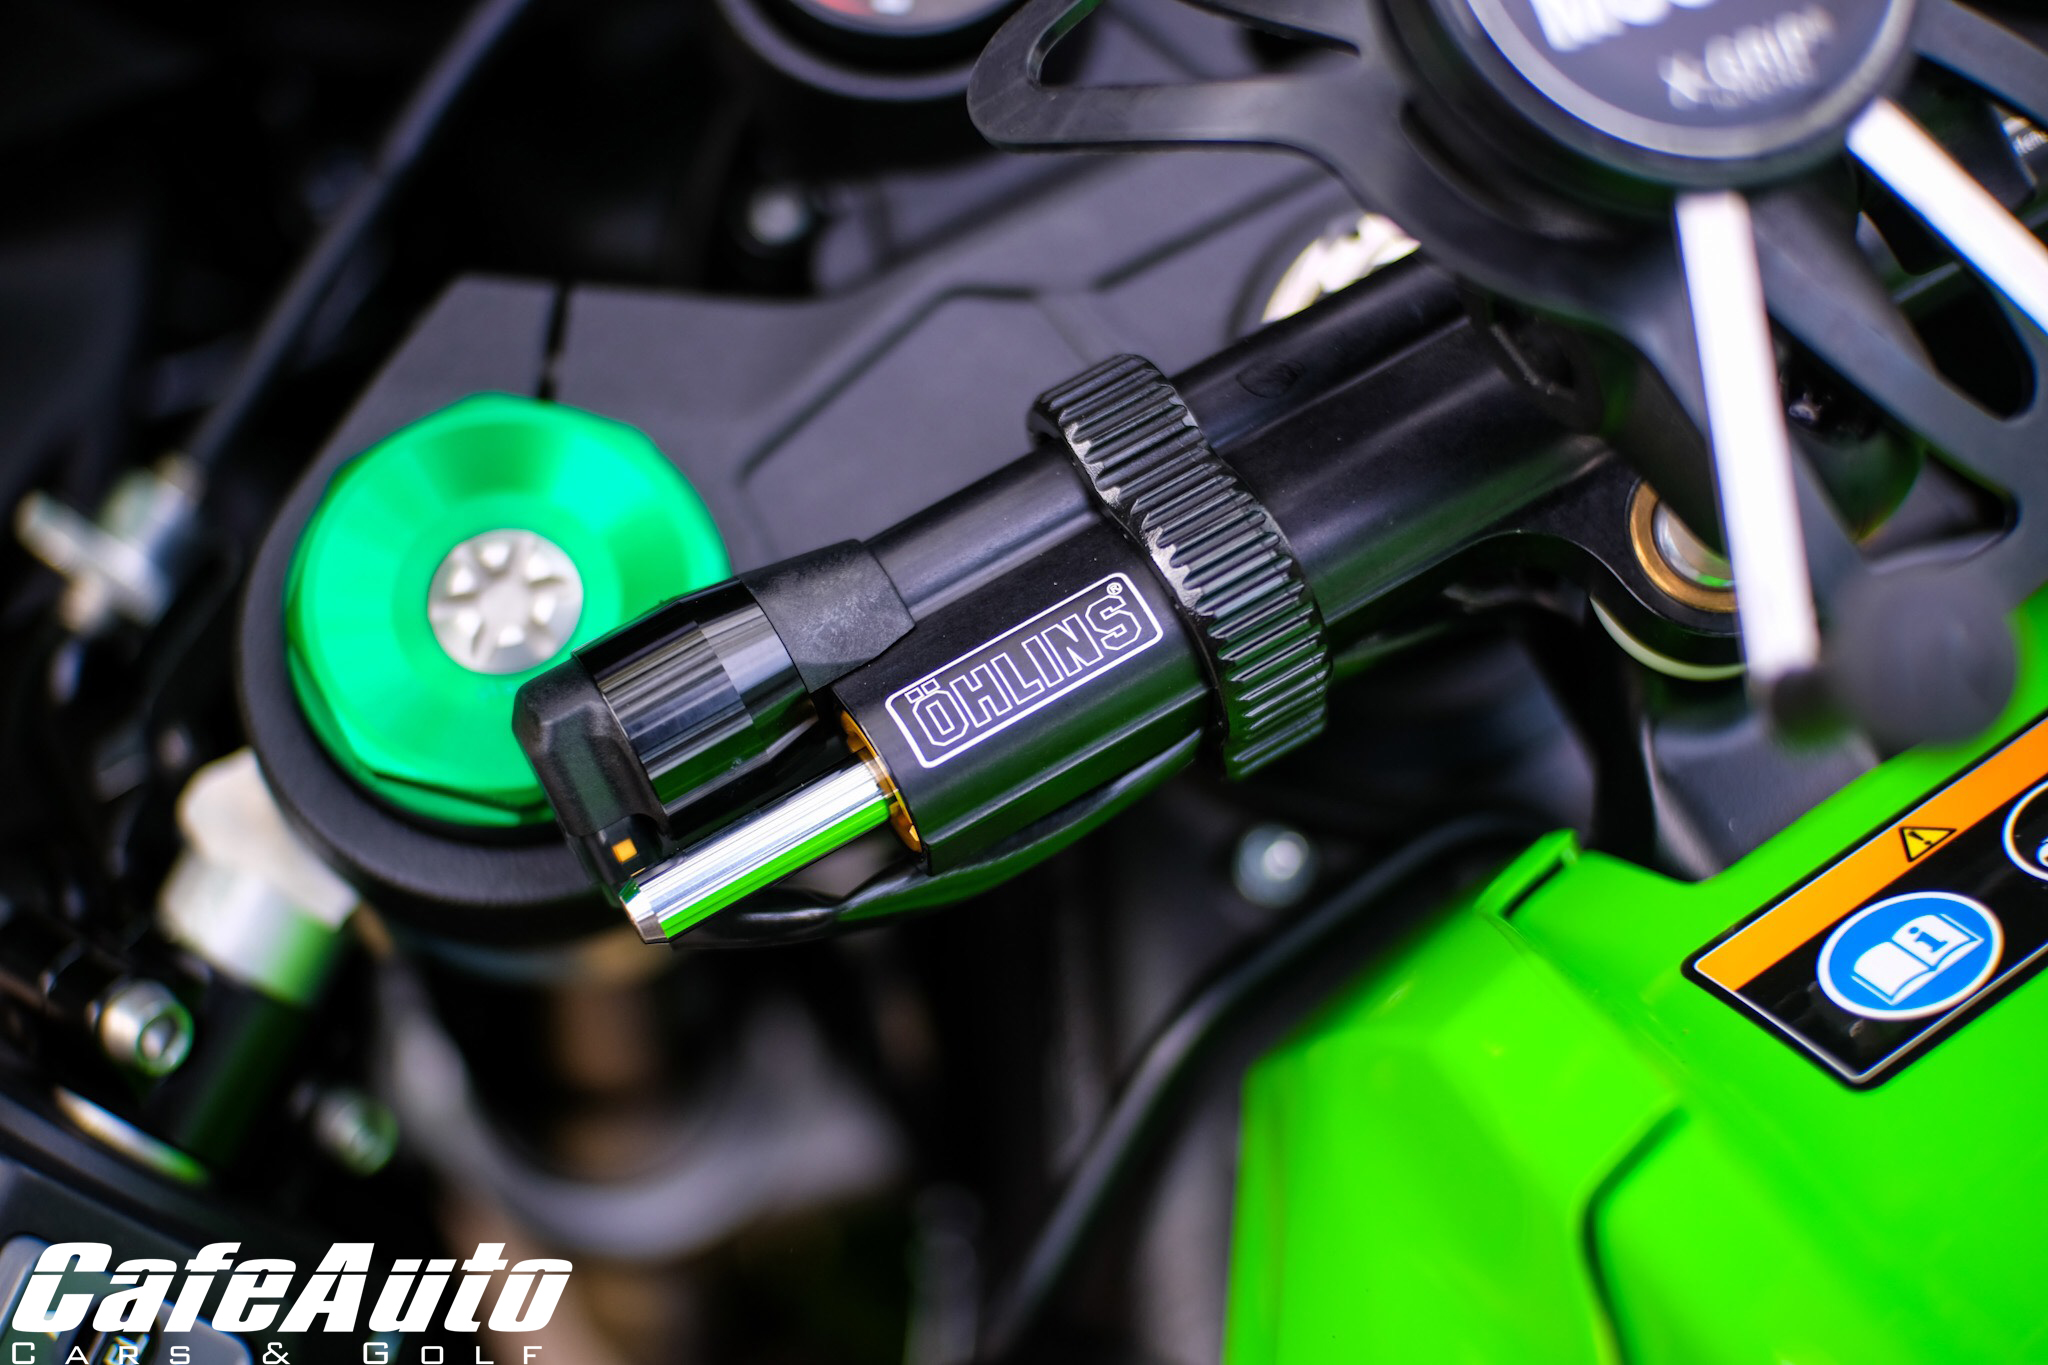 ZX10R-cafeautovn-7